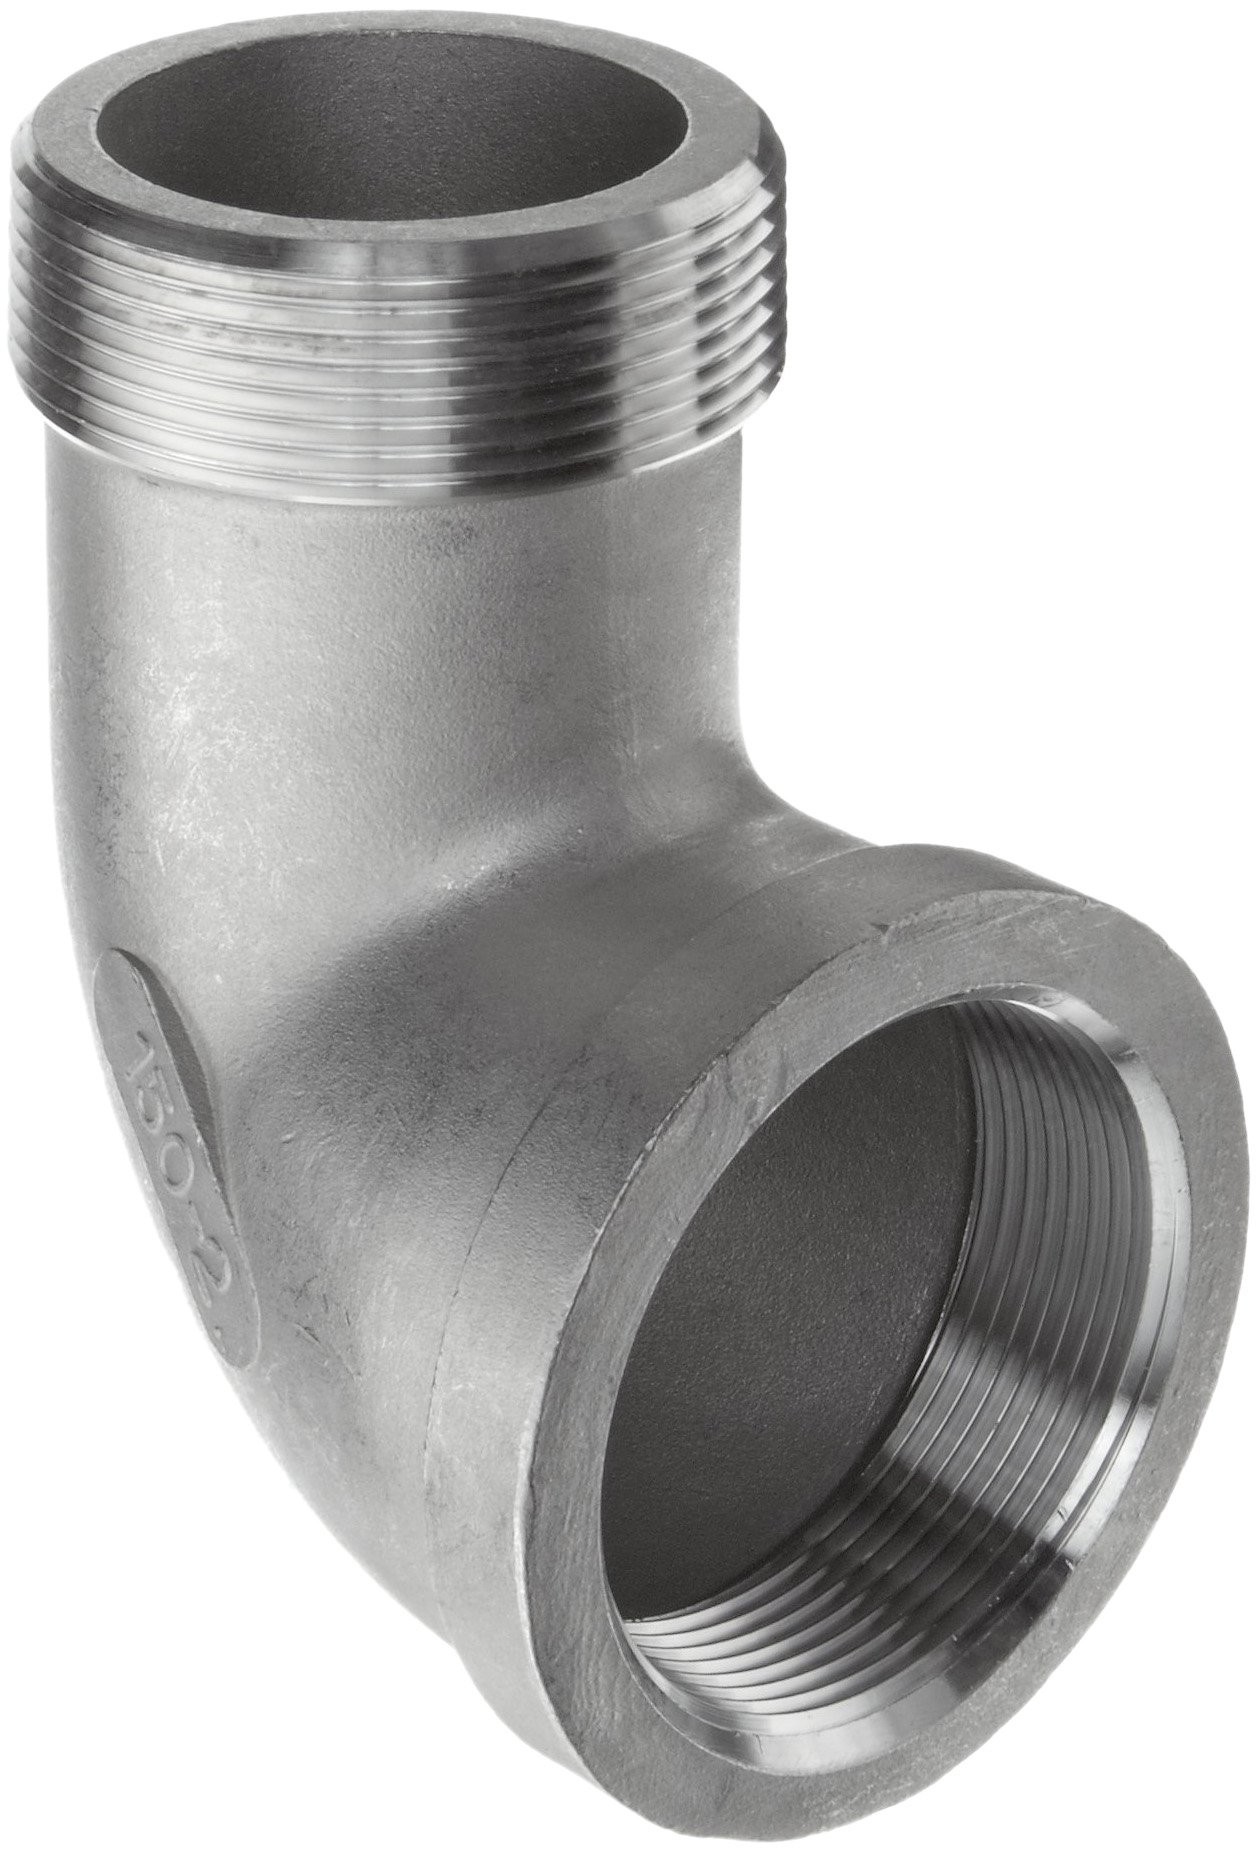 Merit Brass Stainless Steel 316 Cast Pipe Fitting, 90 Degree Street Elbow, MSS SP-114, 1/2'' National Pipe Taper Thread Male (Pack of 25)